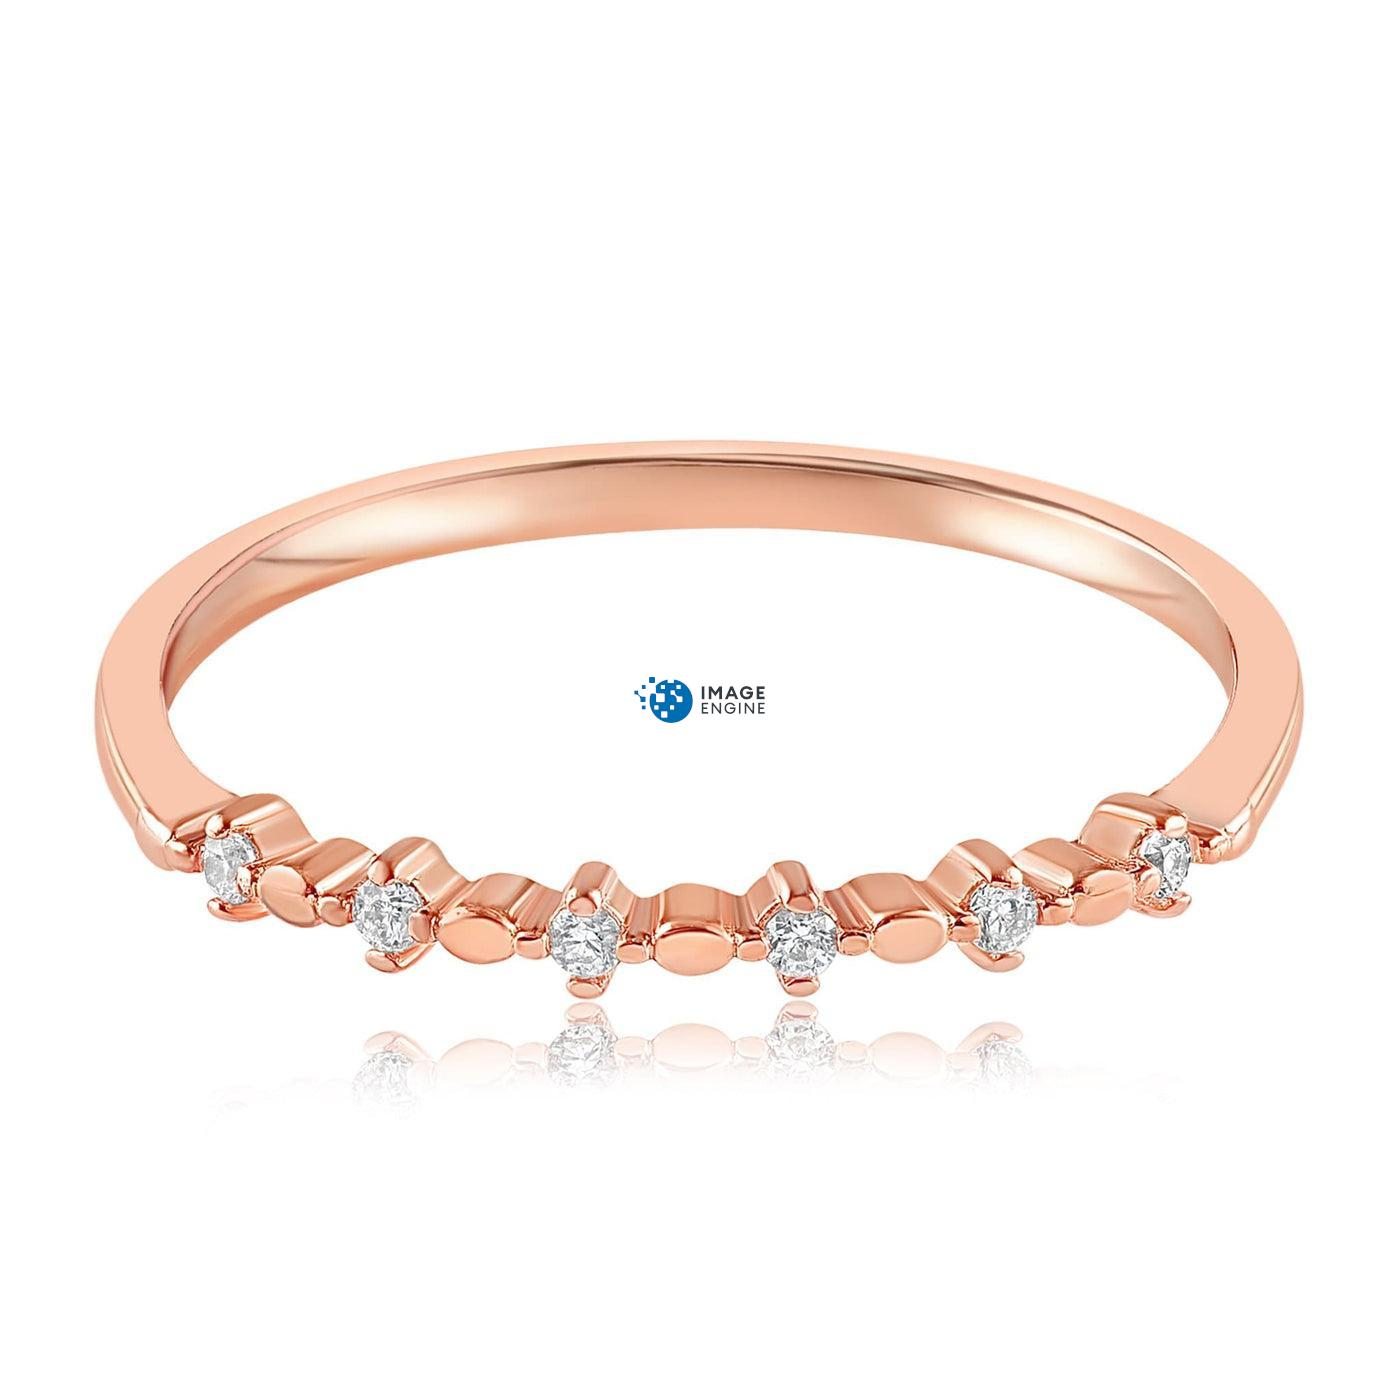 Nicolette Stackable Ring - Front View Facing Down - 18K Rose Gold Vermeil